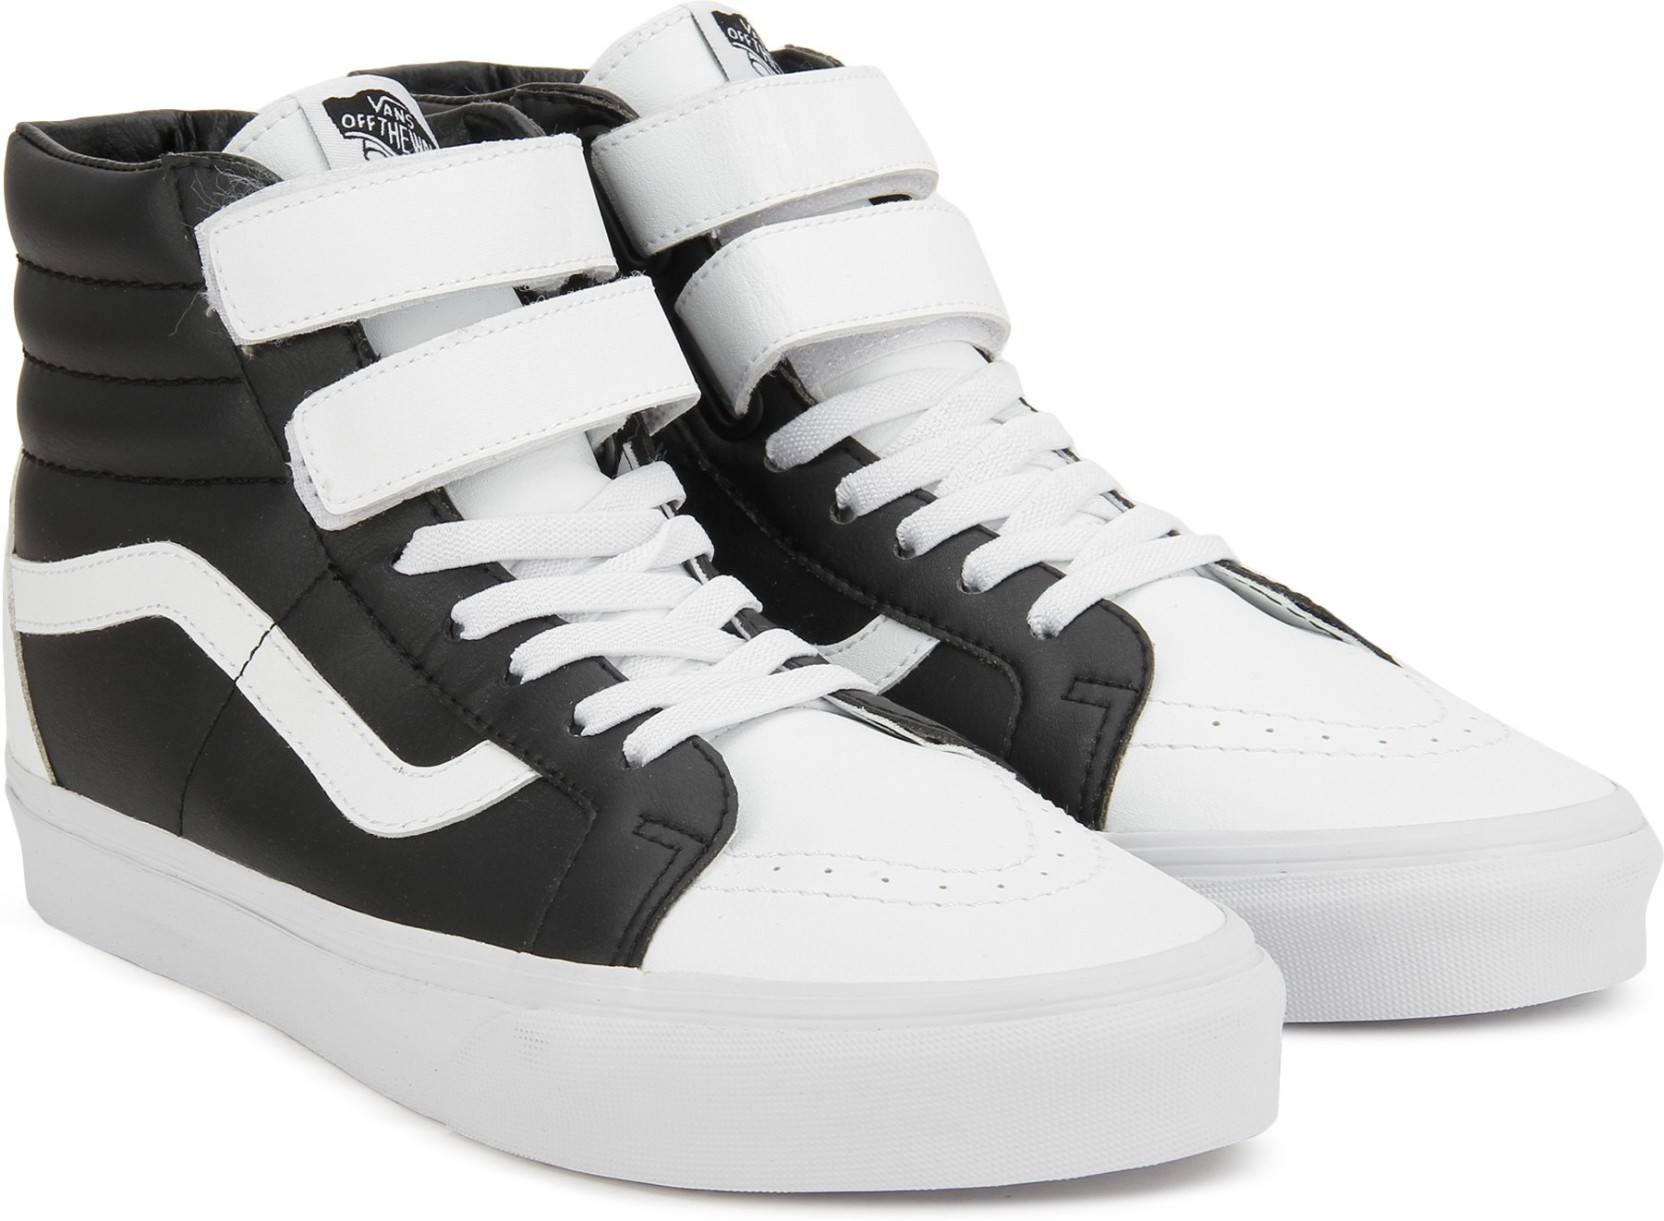 Vans SK8-Hi Reissue V Mid Sneakers For Men - Buy (Classic Tumble ... 31f22cccc